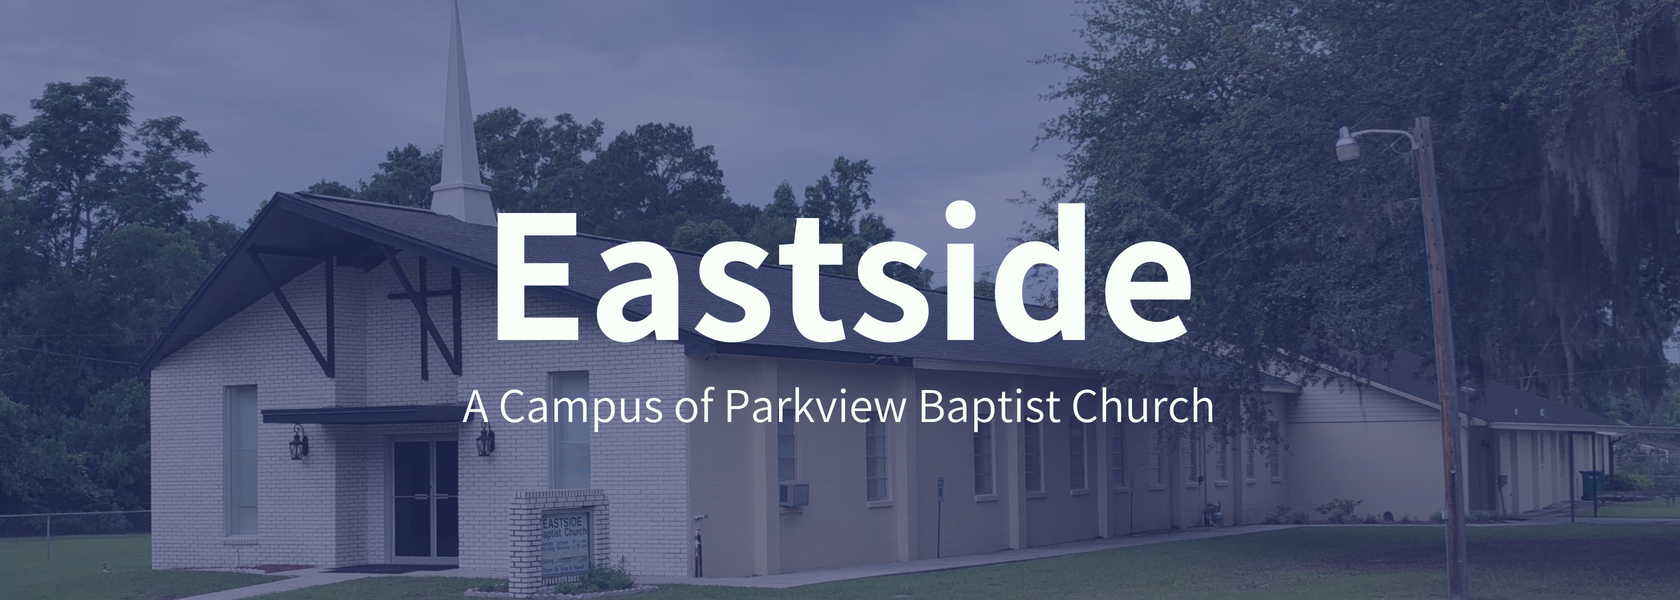 eastside home page